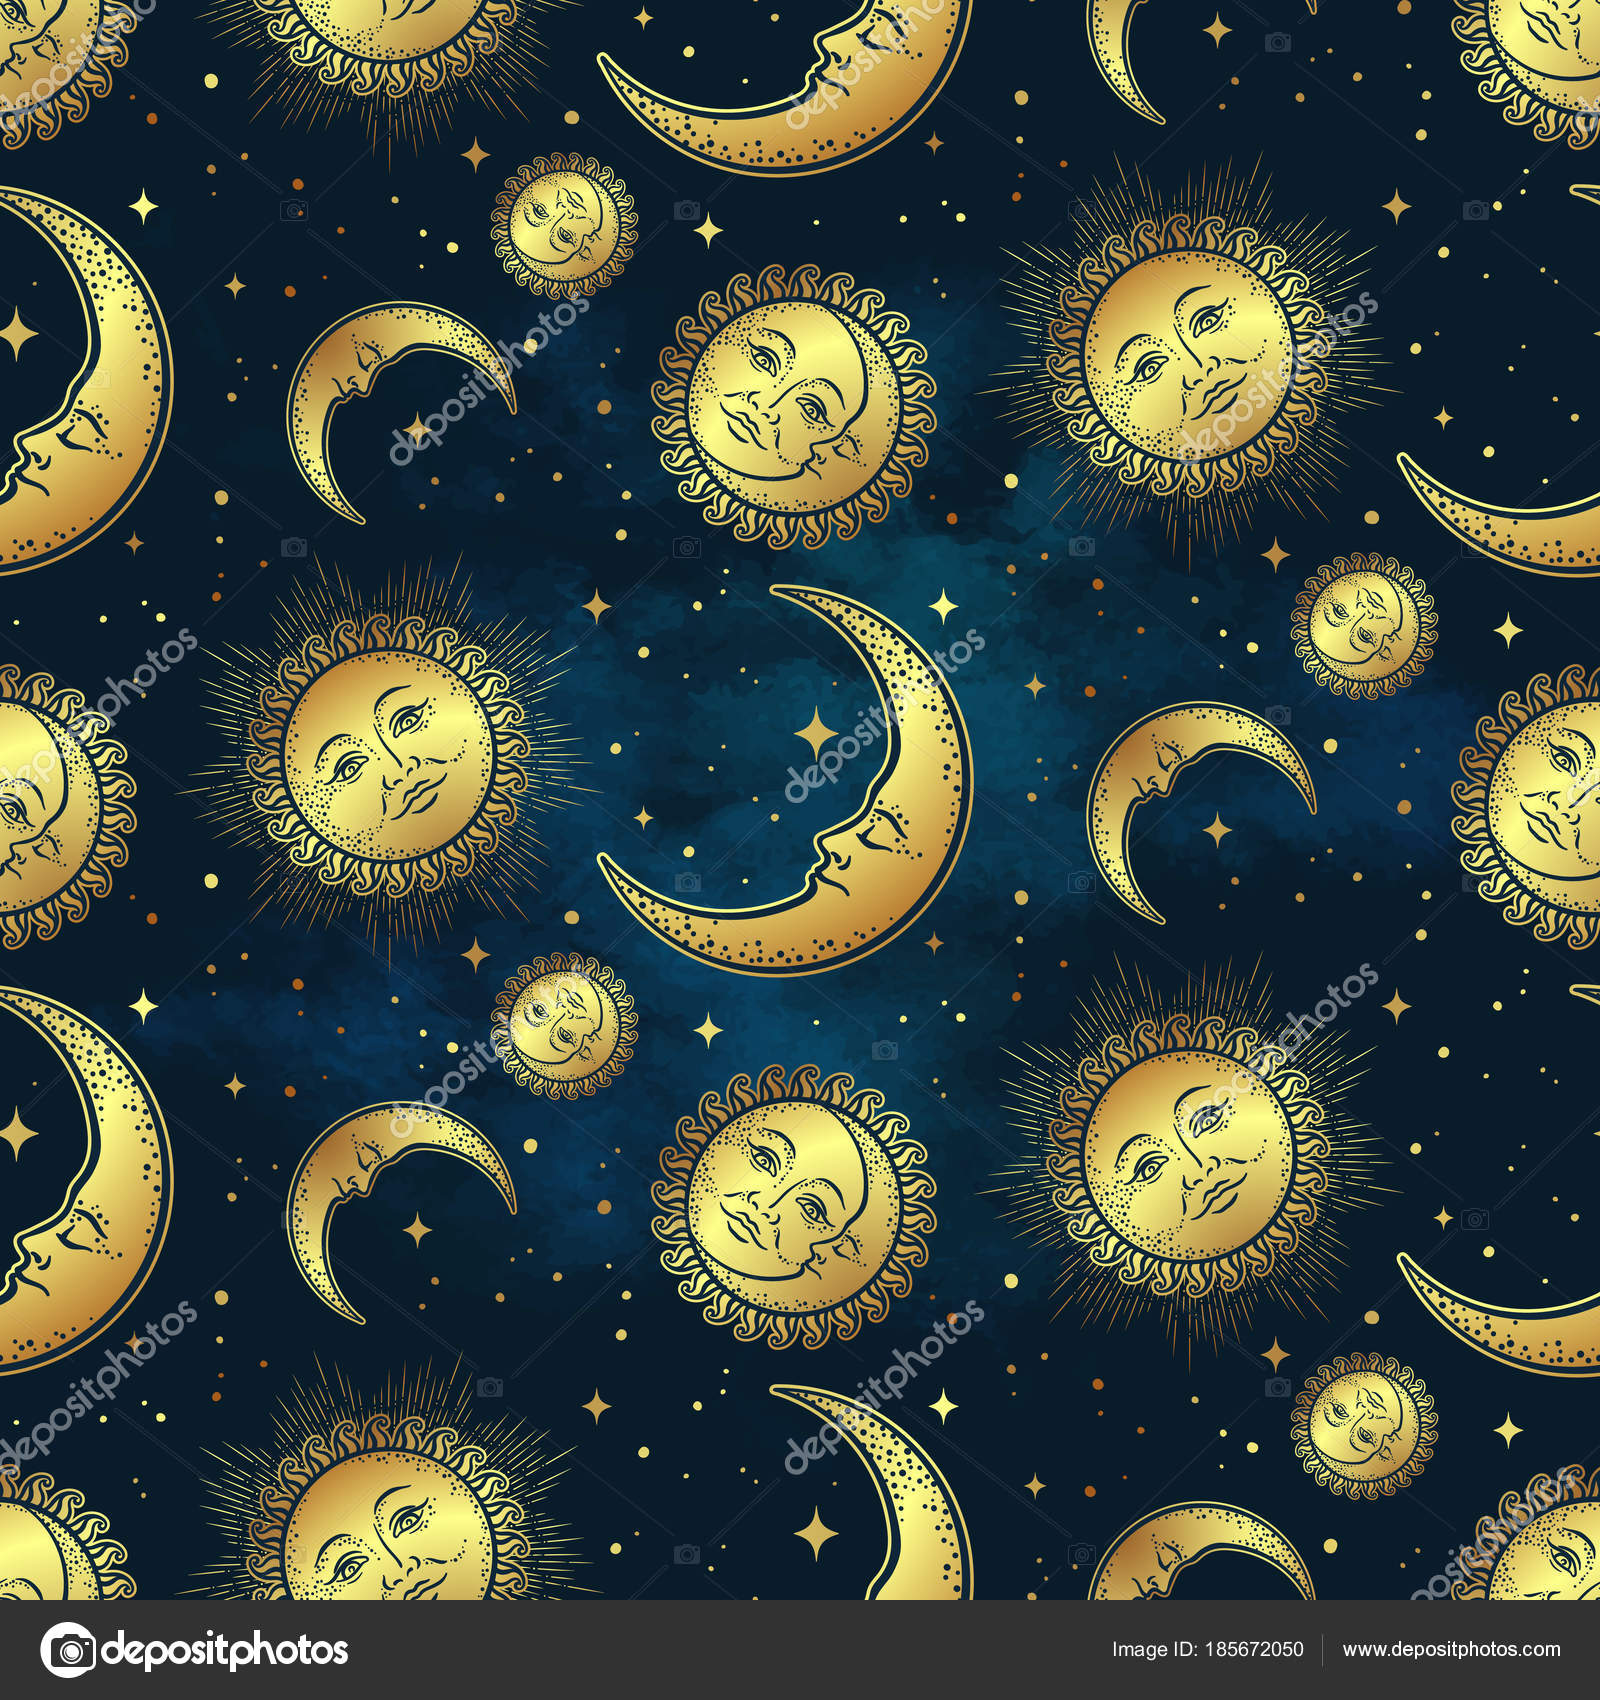 Seamless pattern with gold celestial bodies   moon, sun and stars over blue  night sky background. Boho chic fabric print, wrapping paper or textile ...